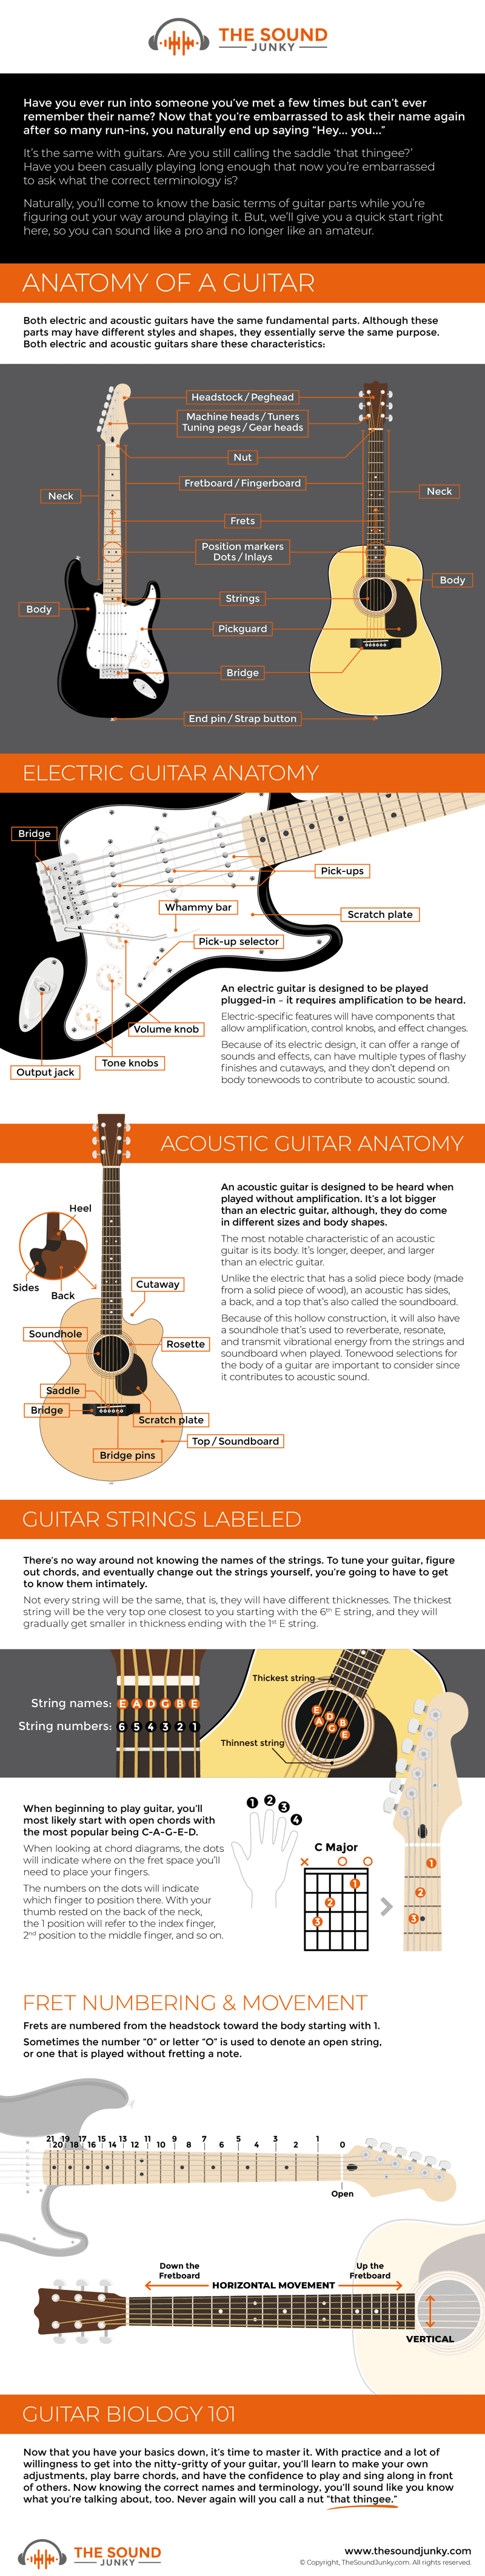 Guitar Anatomy Infographic